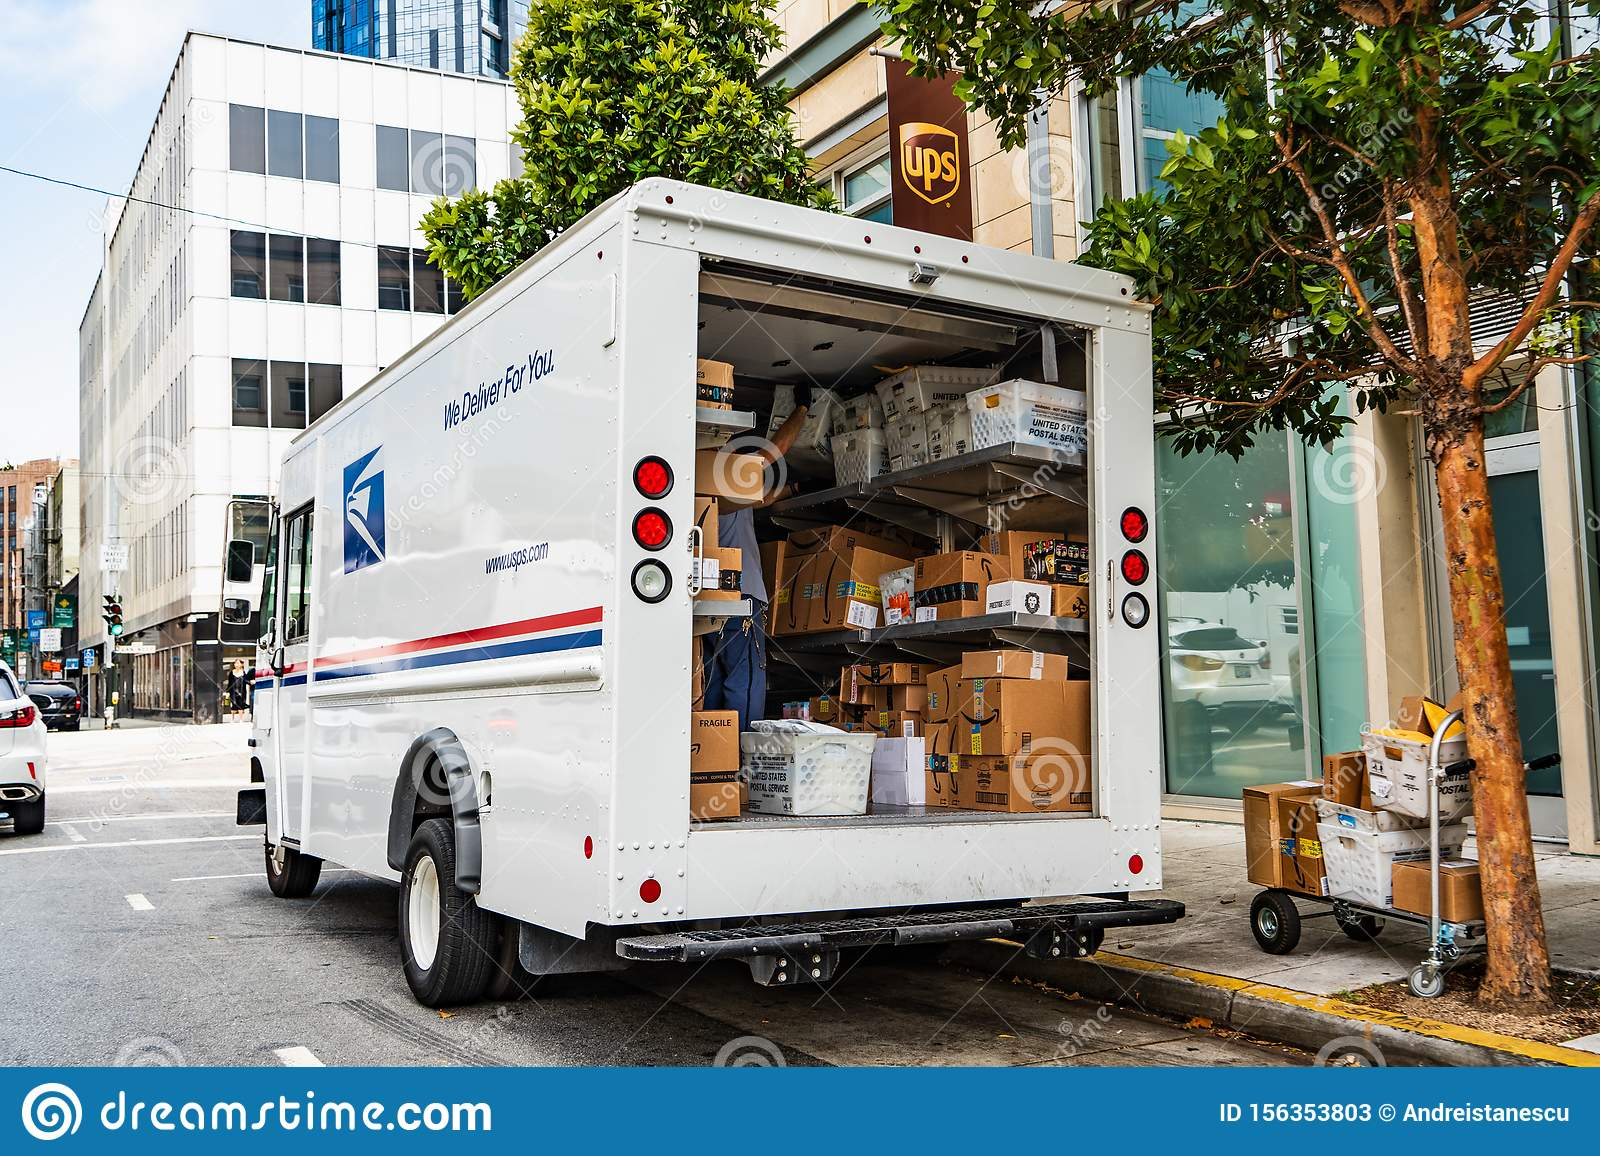 August 10, 2019 San Francisco / CA / USA - USPS delivery van stopped in front of a UPS location, unloading Amazon packages